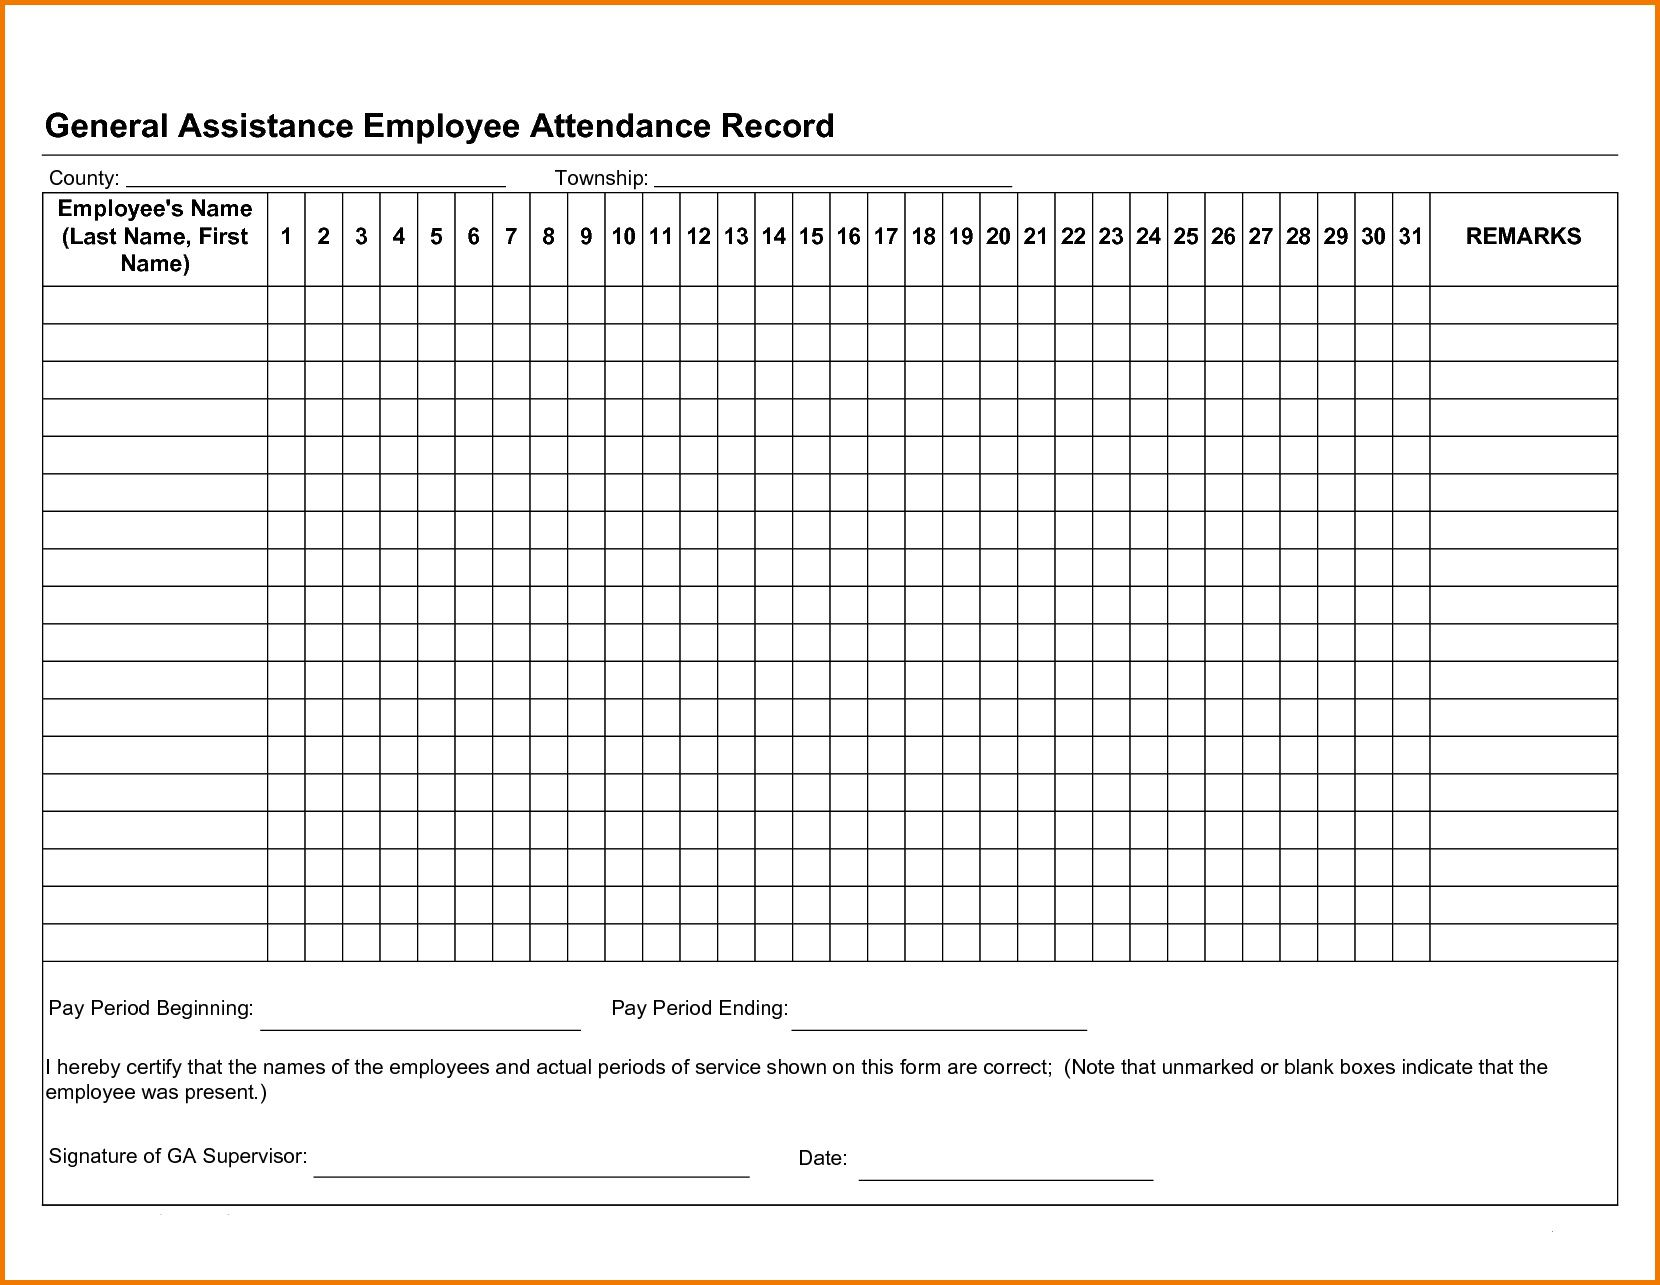 001 Shocking Employee Attendance Record Template Excel Idea  Free Download With TimeFull